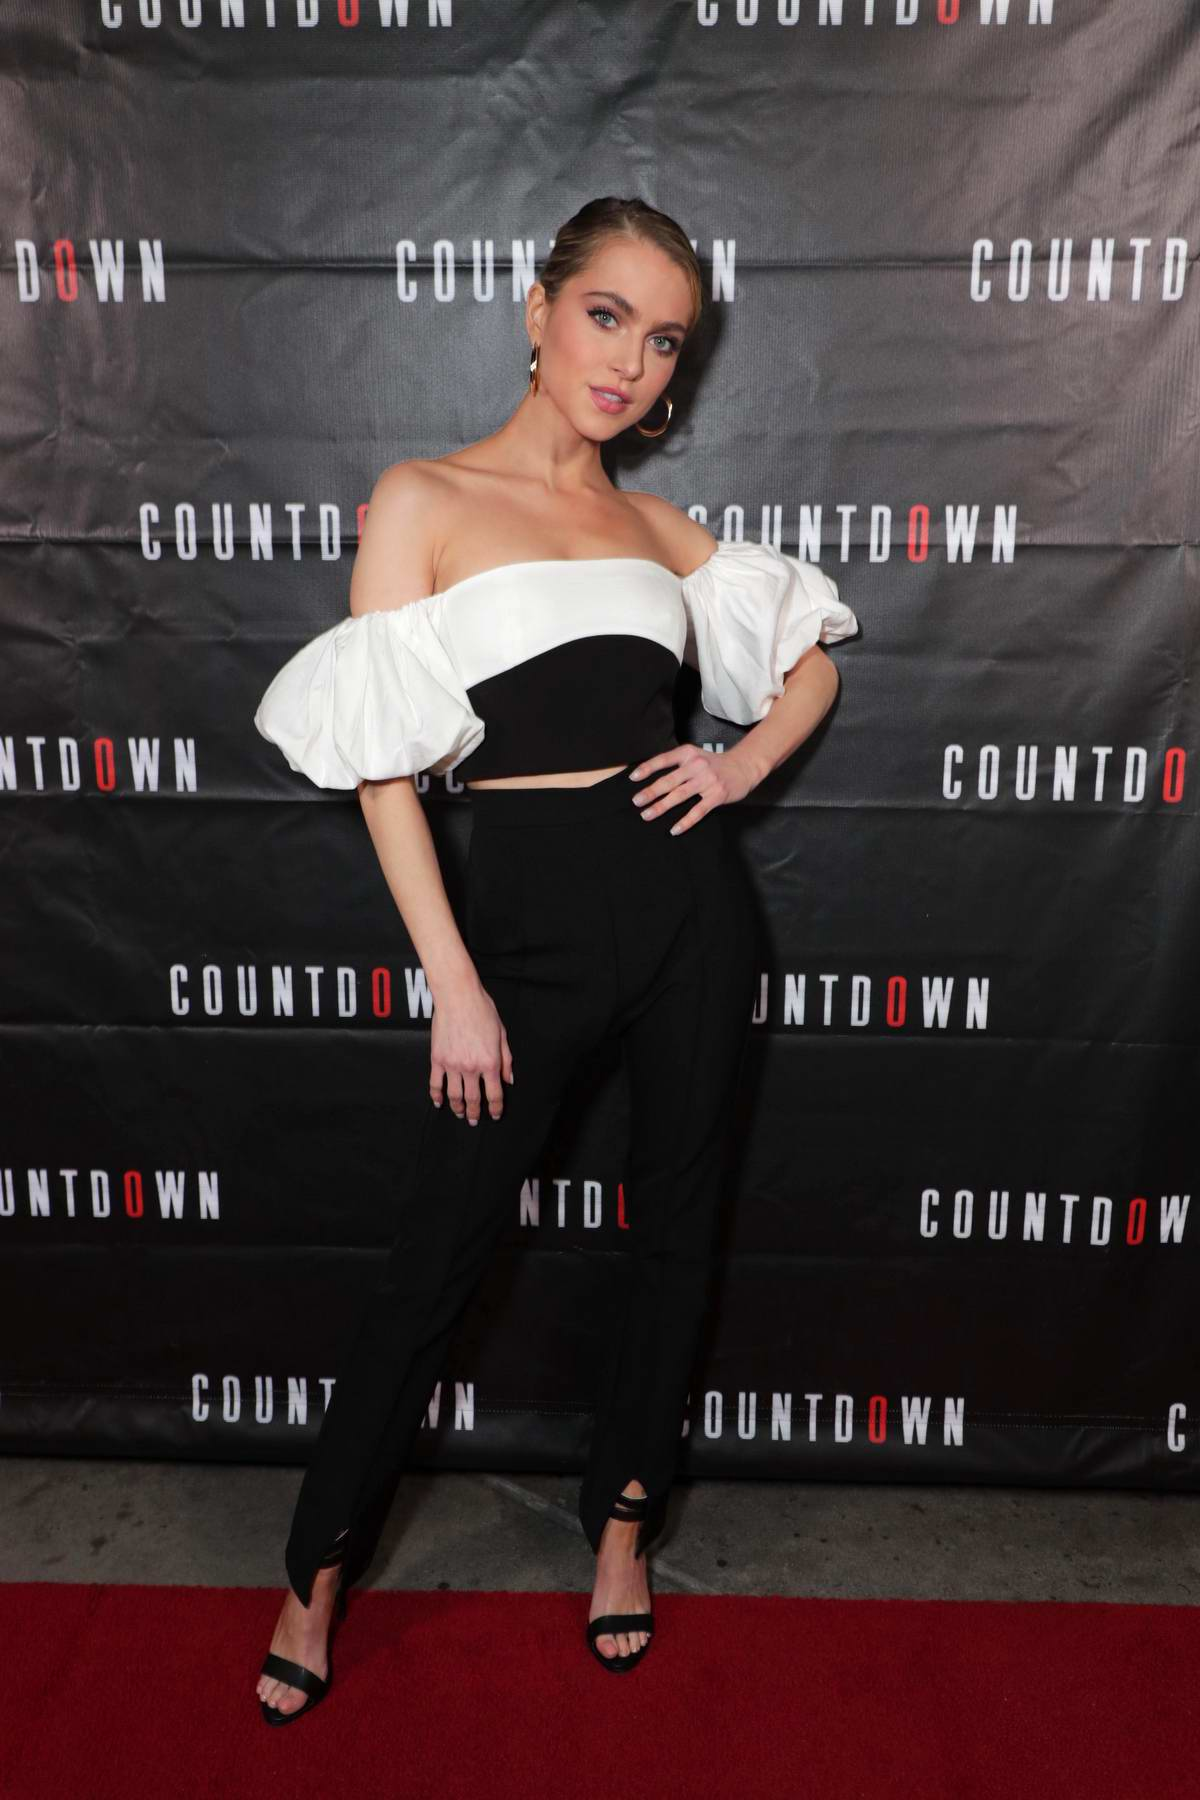 Anne Winters attends a special screening of 'Countdown' in Los Angeles